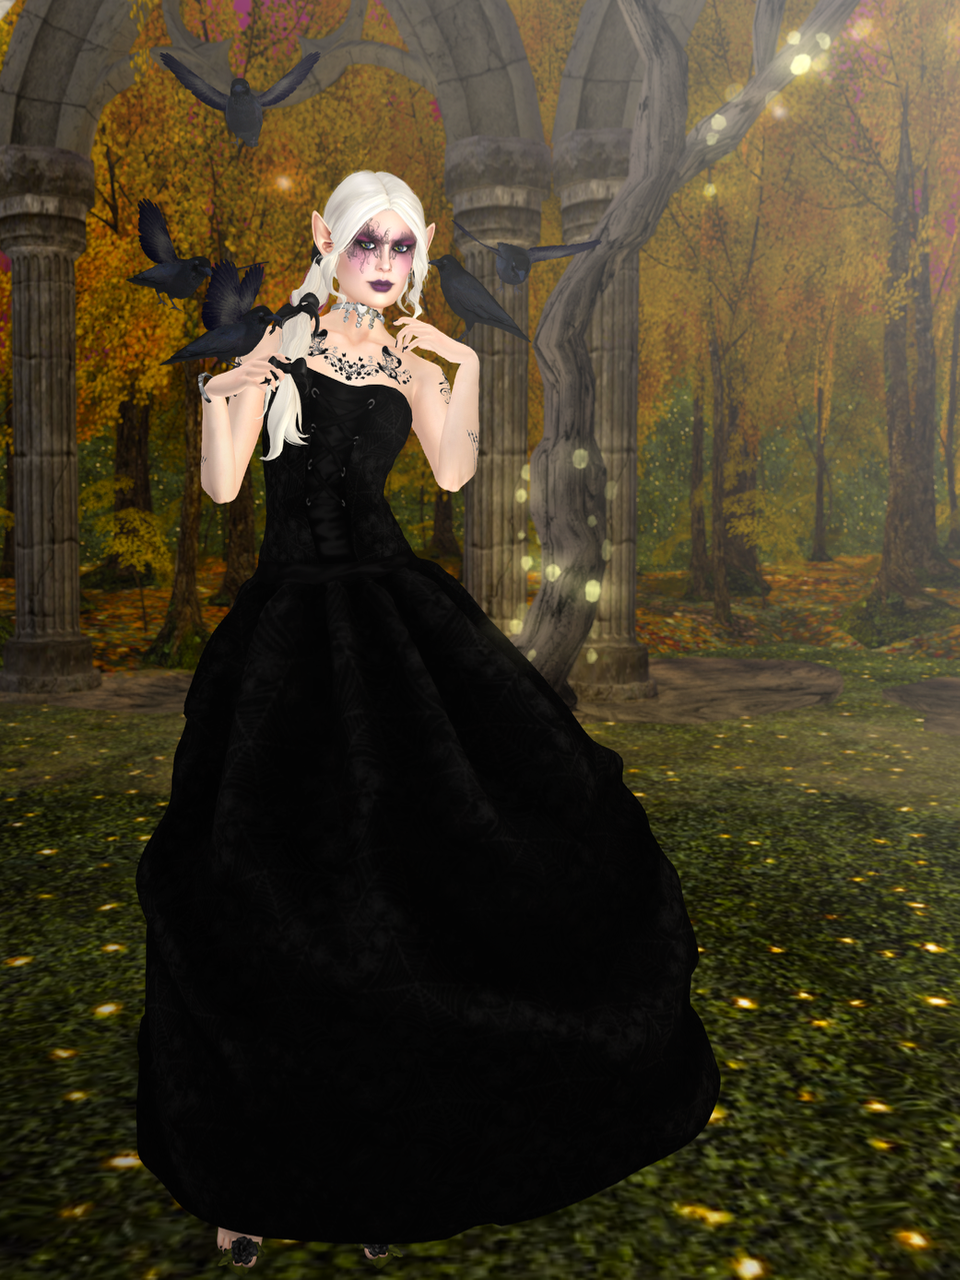 No sooner had they put the next dress on me than a small murder of crows appeared.